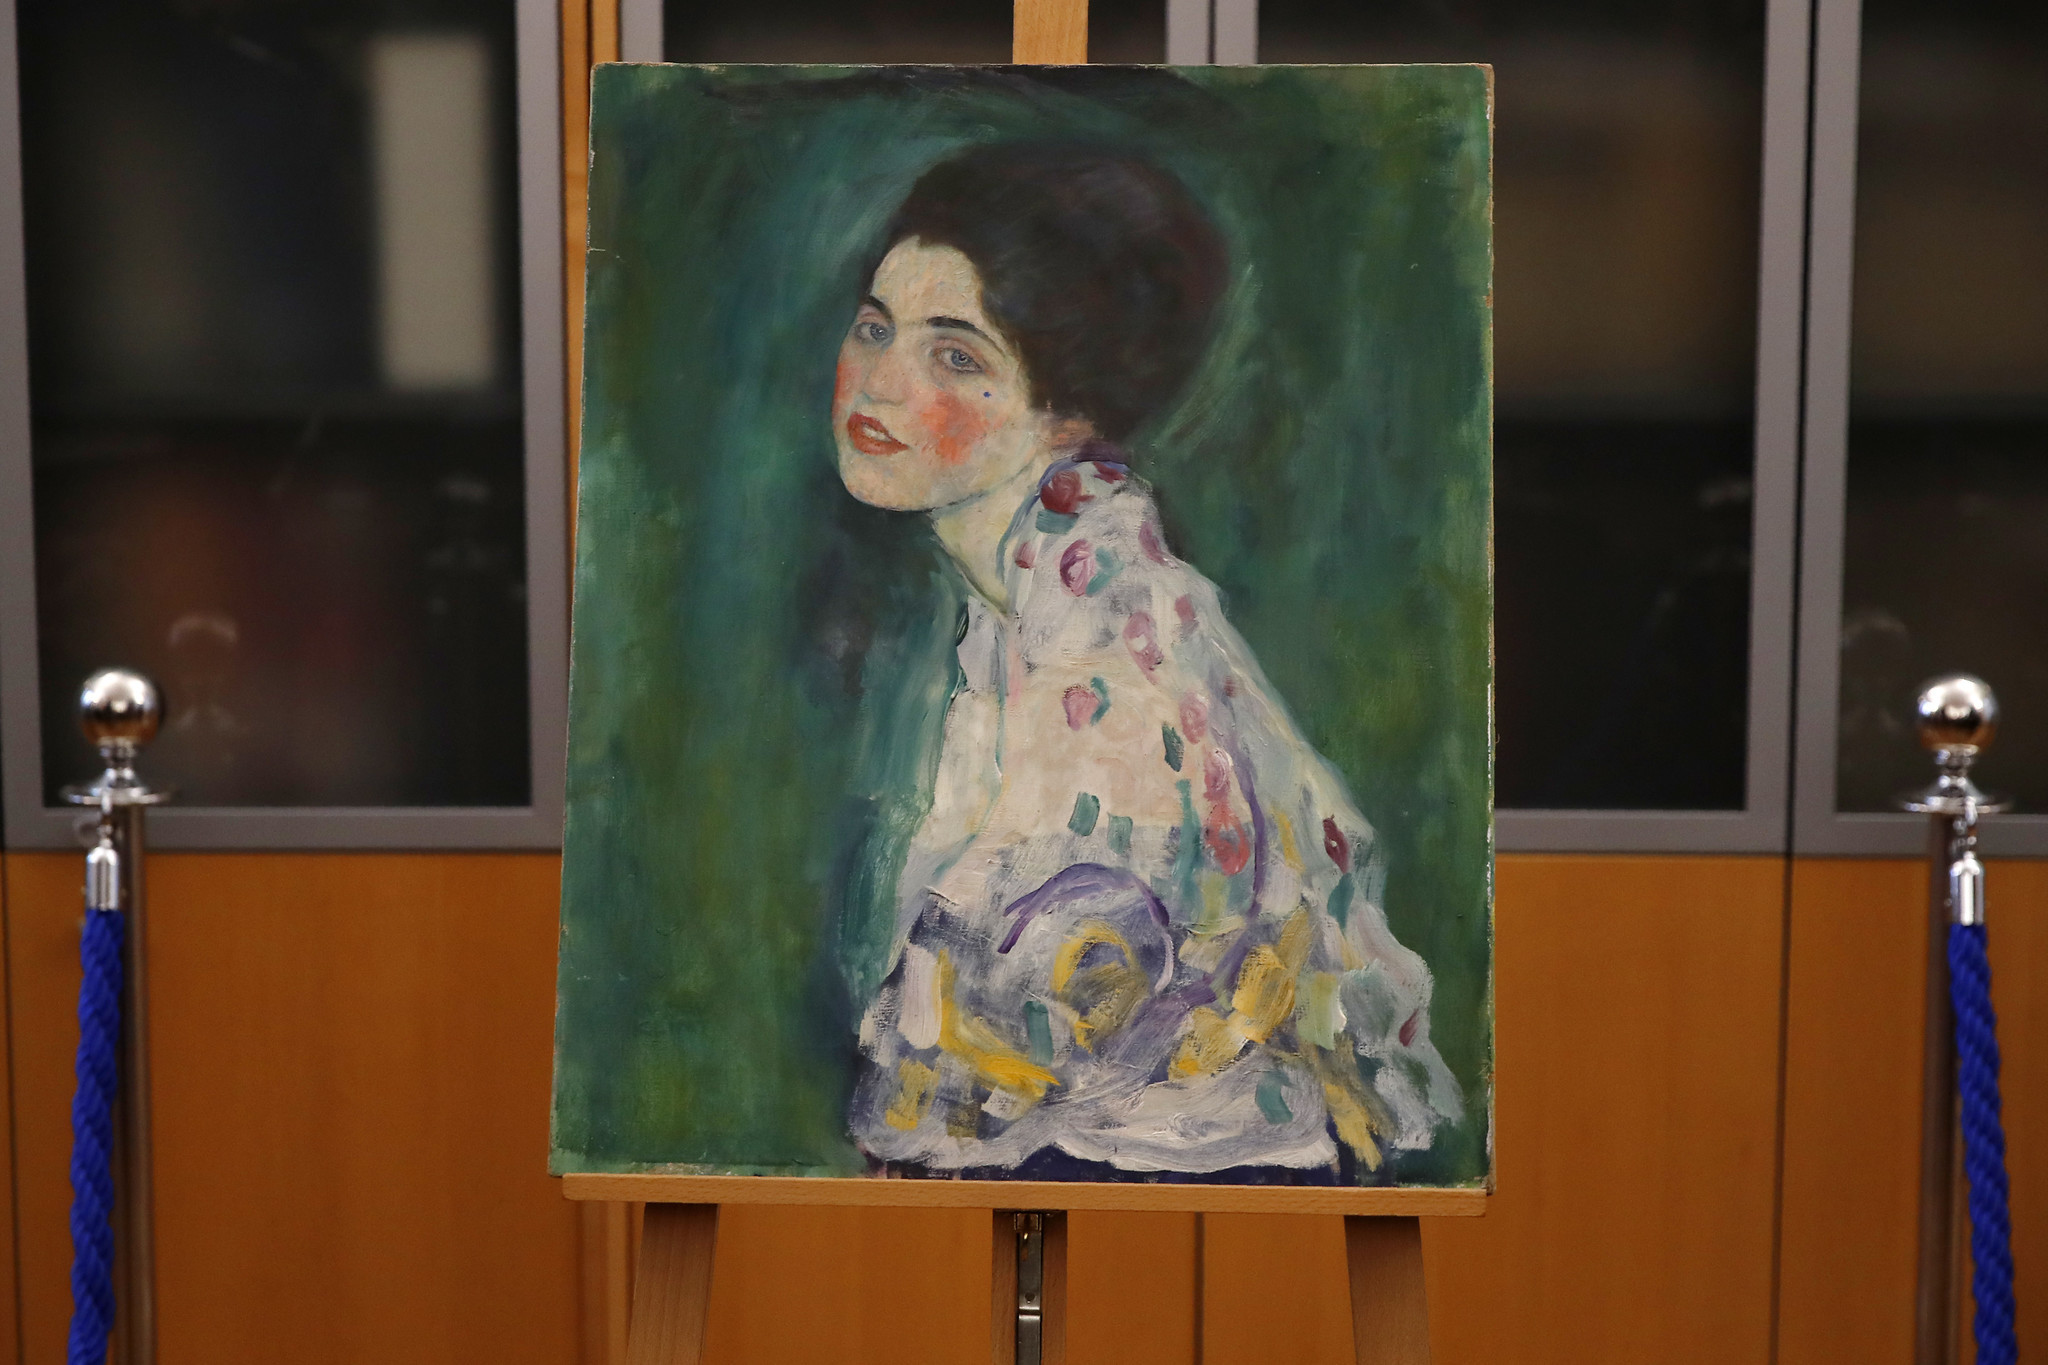 Recently found Klimt painting verified real — and worth $50M